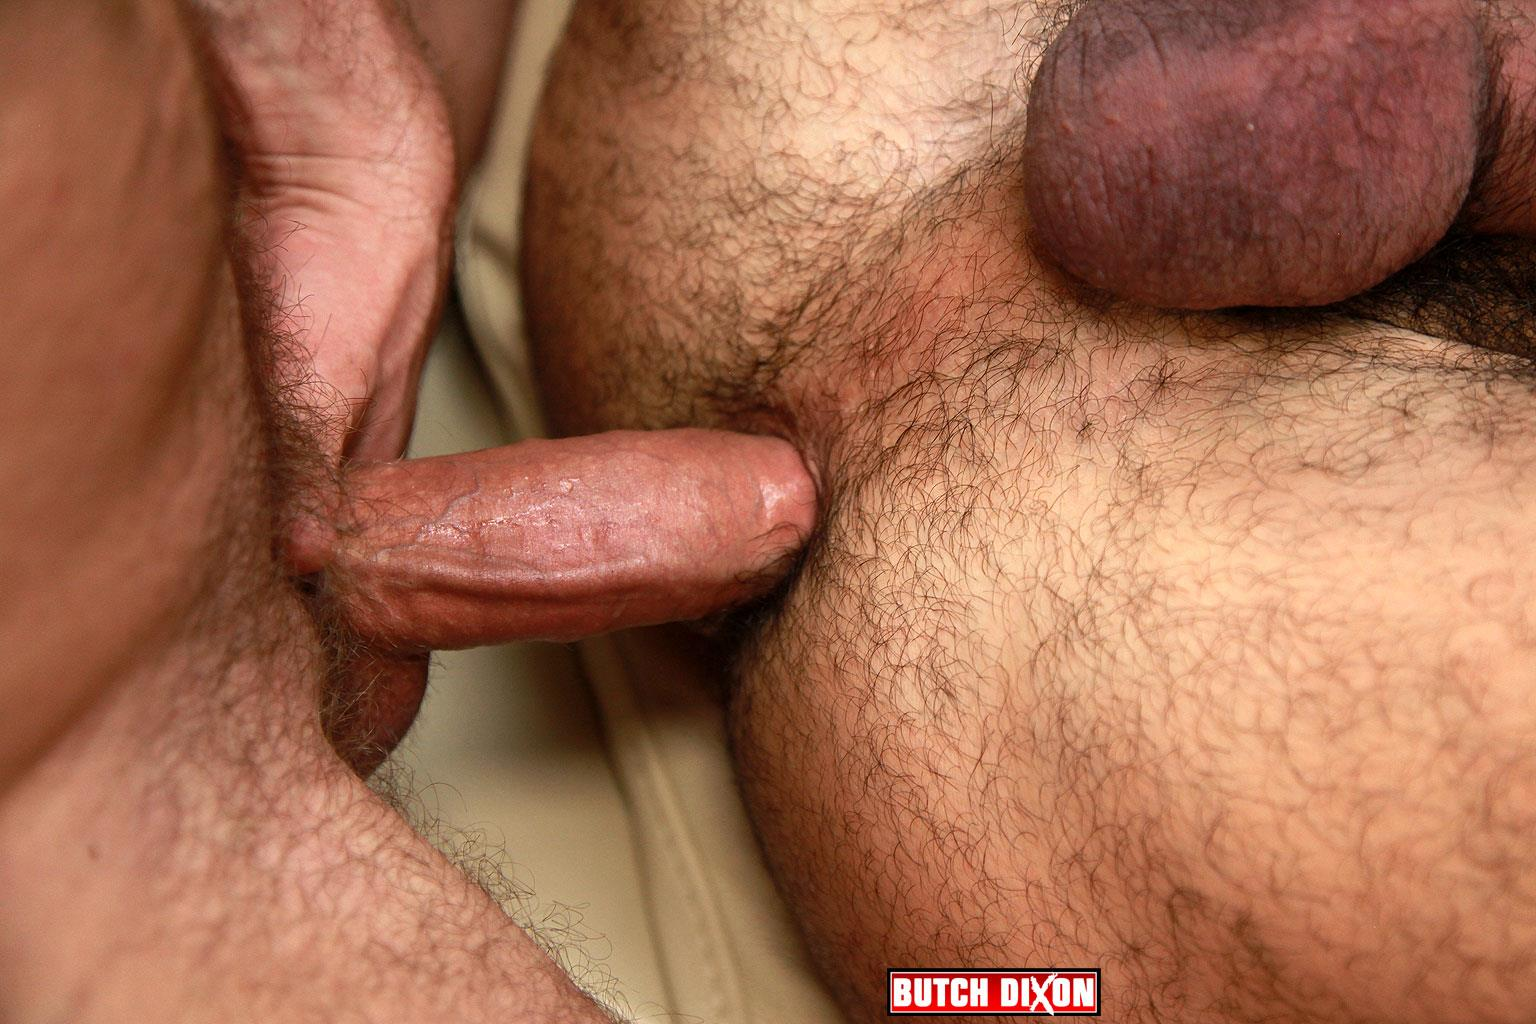 Butch-Dixon-Adam-Russo-and-Adam-Dacre-Getting-Fucked-By-A-Big-Uncut-Cock-Amateur-Gay-Porn-07 Adam Russo Getting A Big Bareback Uncut Cock Up His Hairy Ass